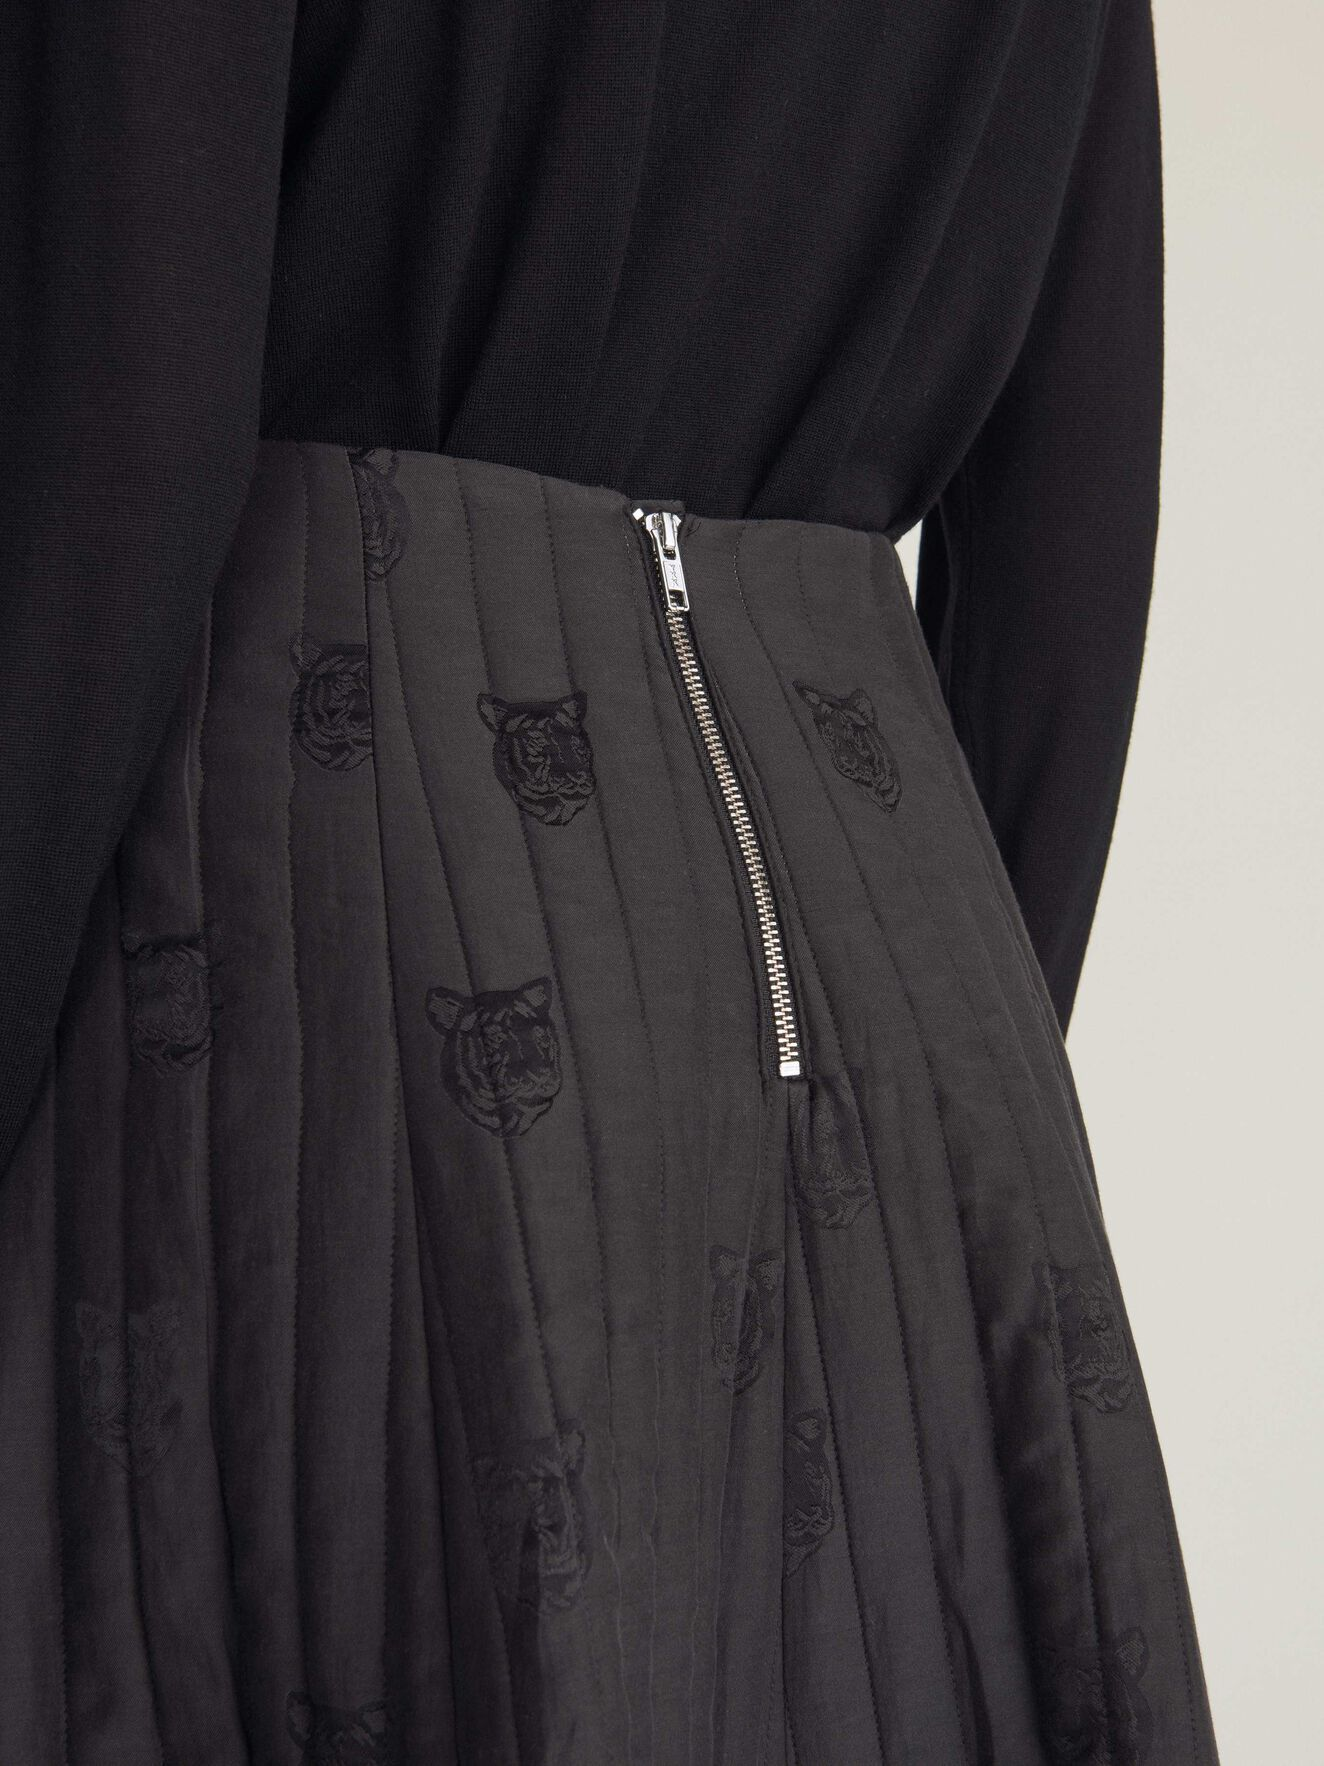 Leolla Skirt in Midnight Black from Tiger of Sweden